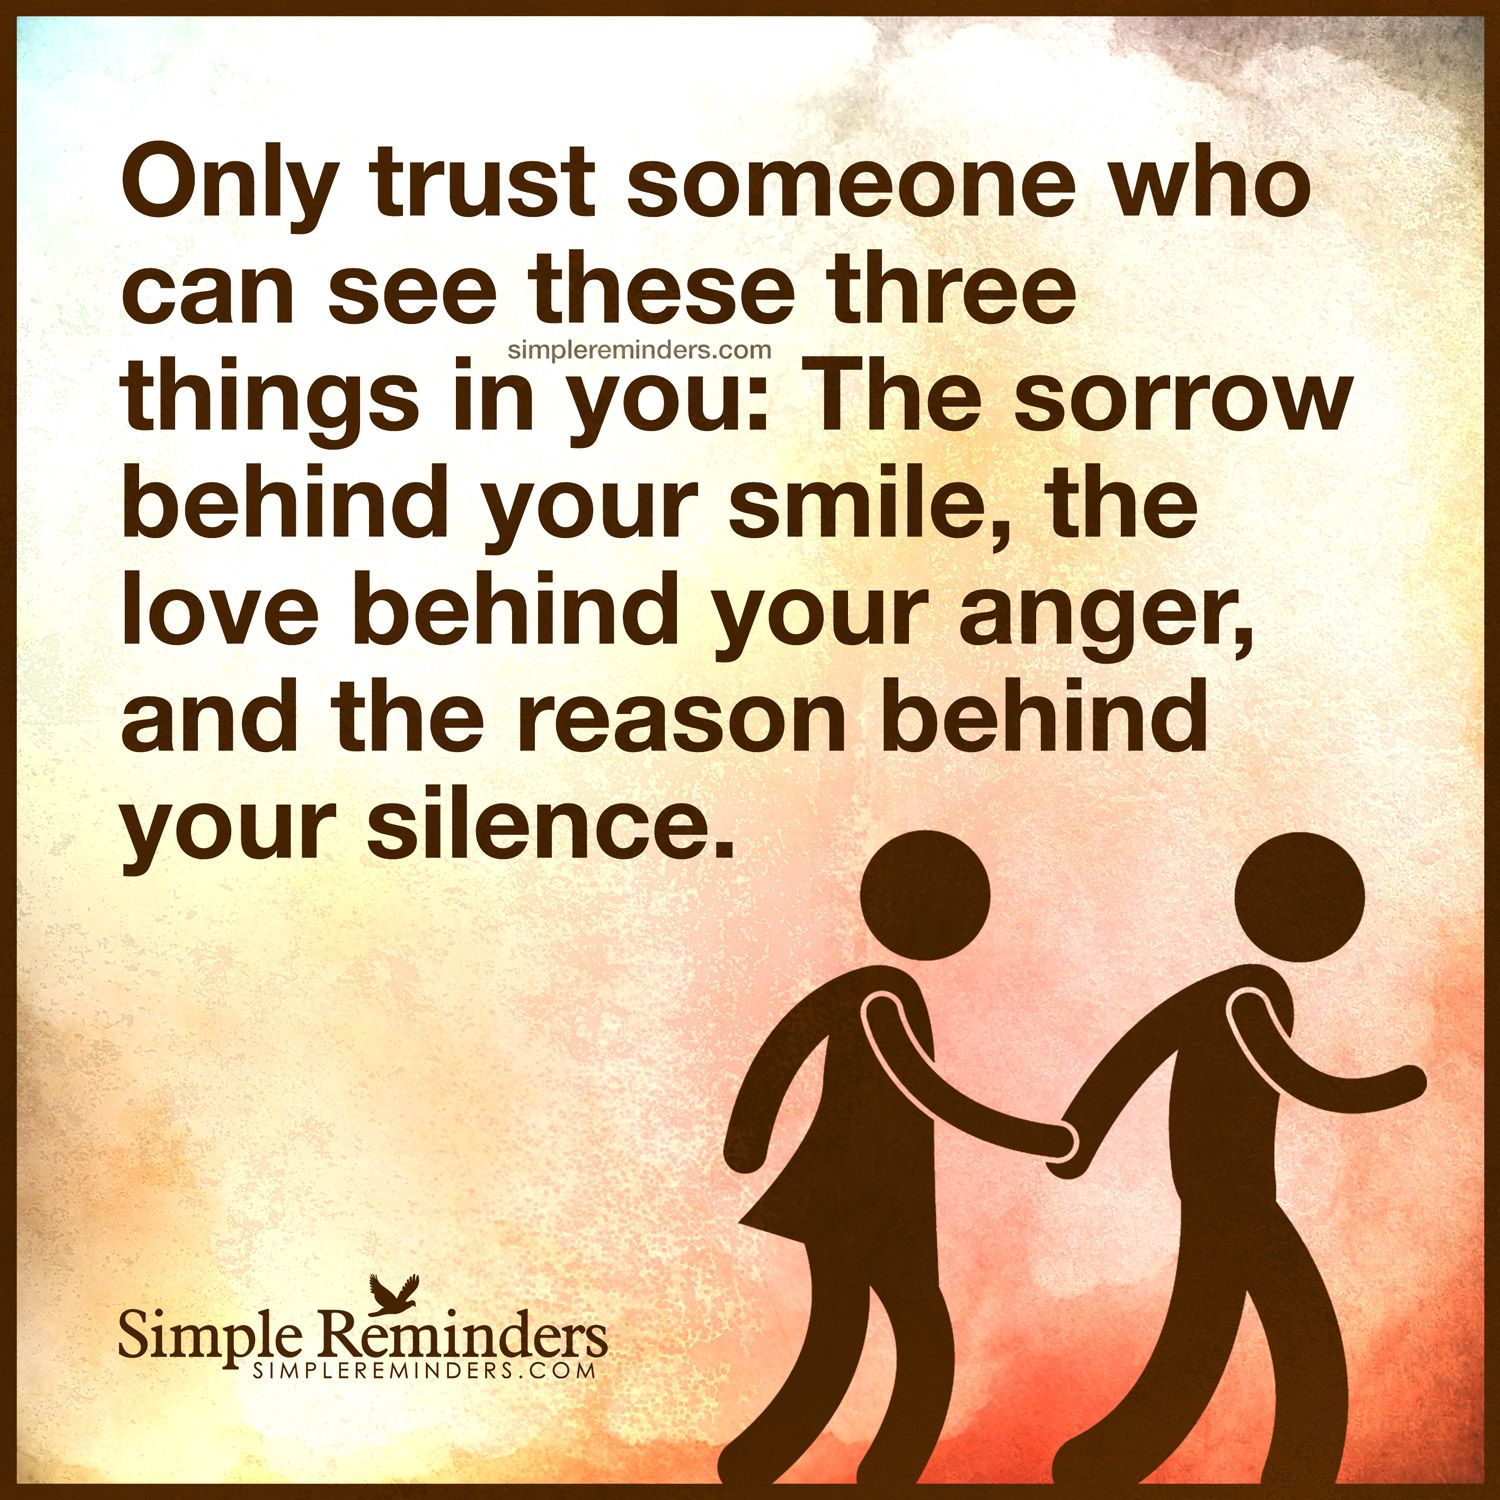 Quote by Unknown Author ly trust someone who can see these three things in you The sorrow behind your smile the love behind your anger and the reason